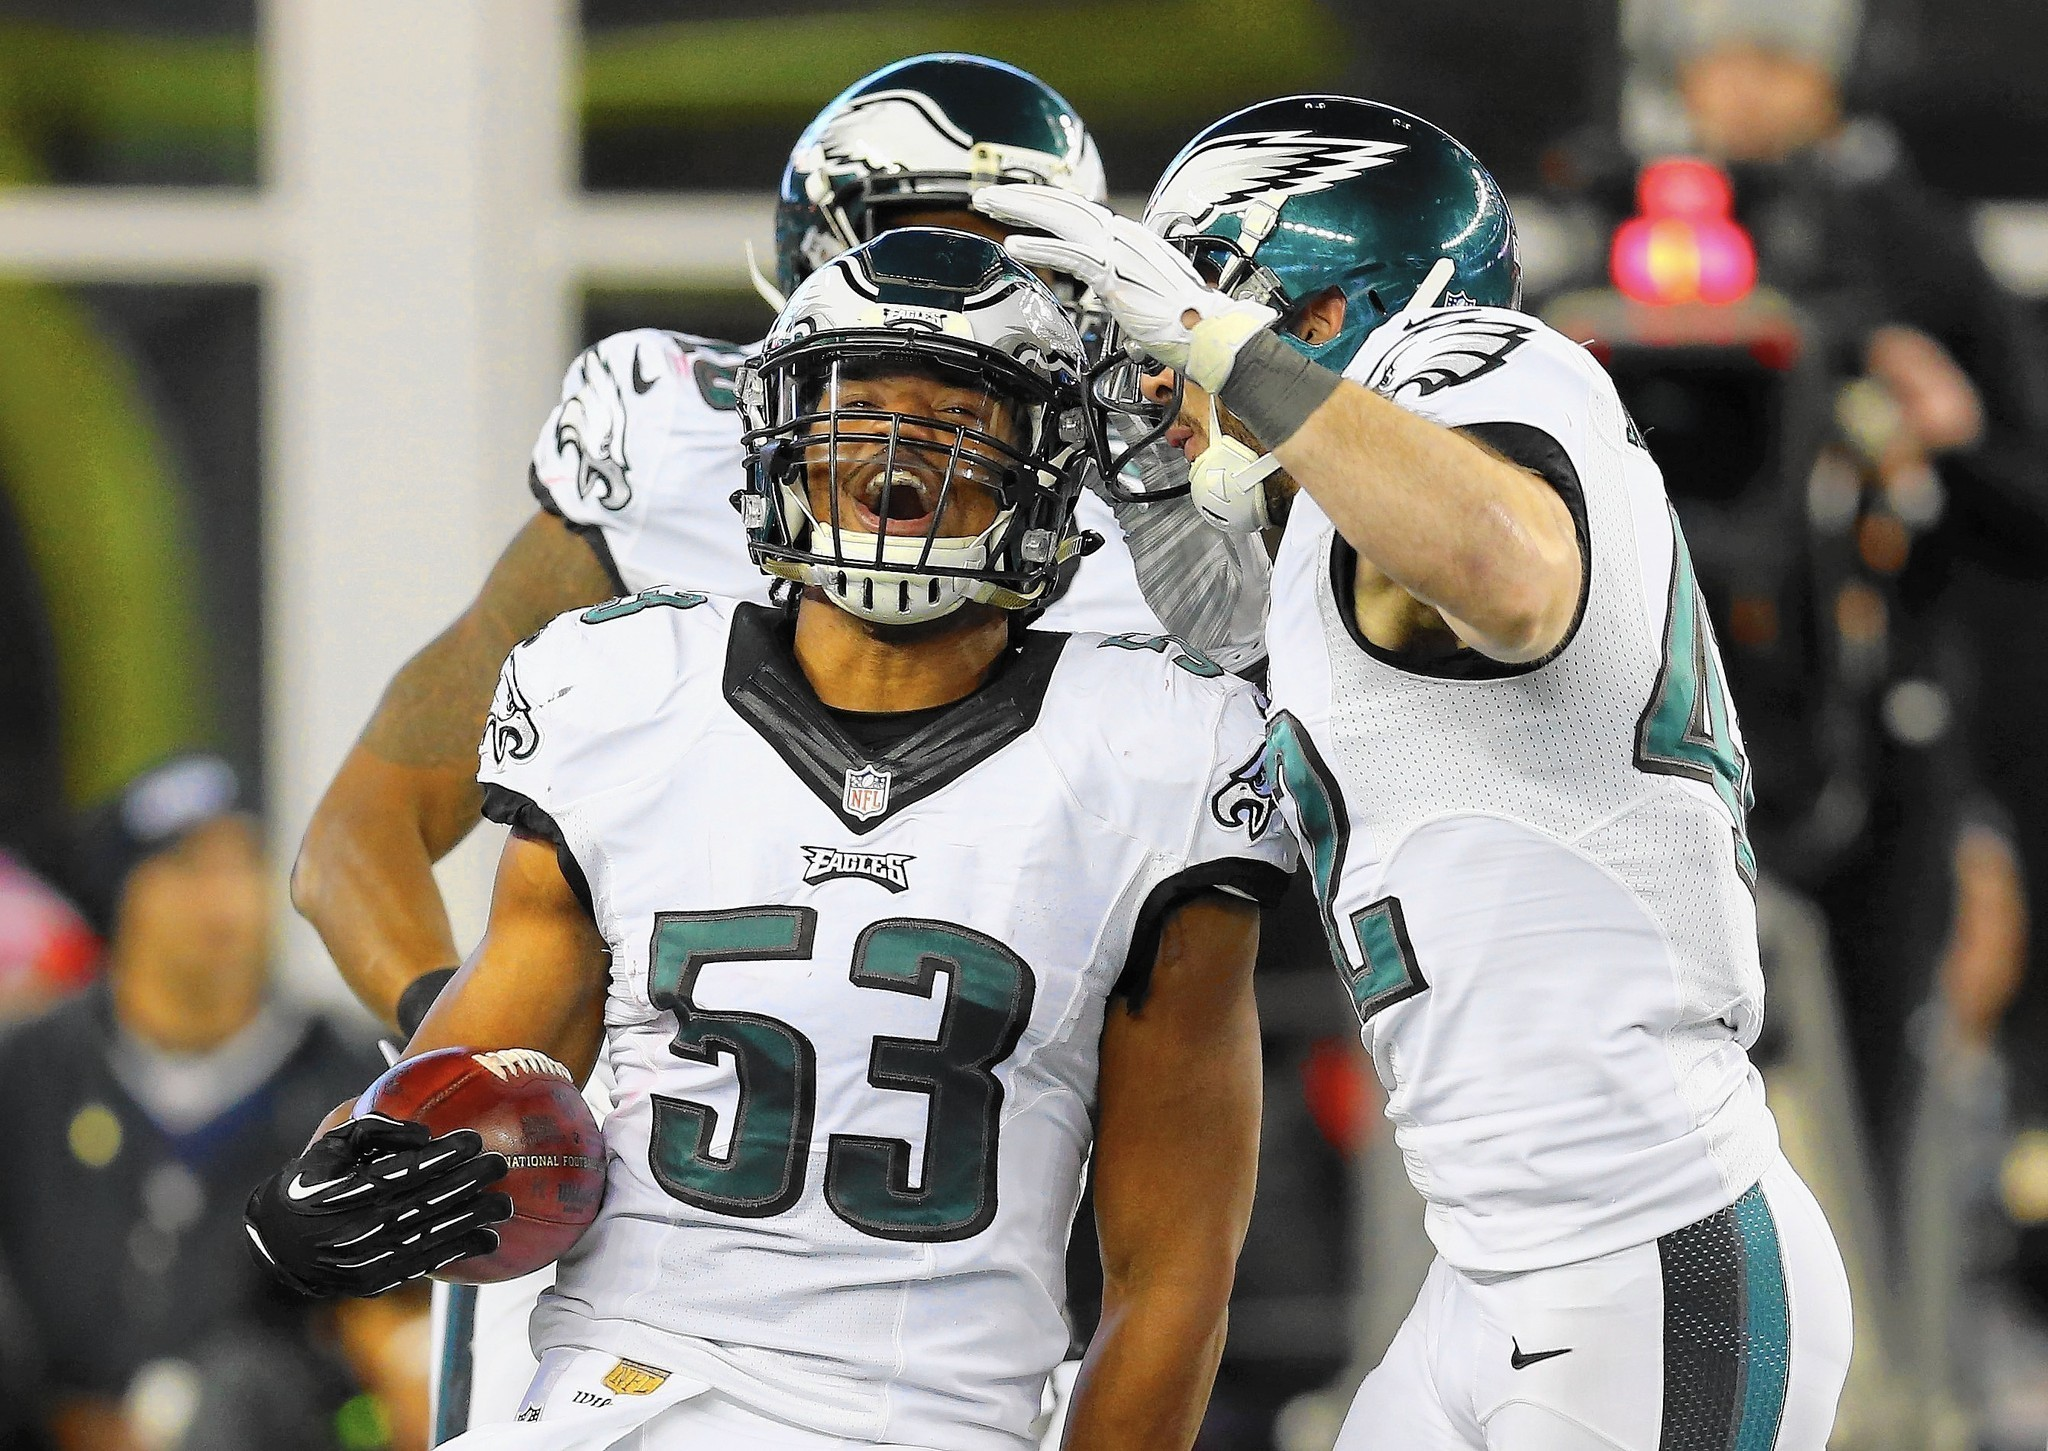 Special teams provide a huge lift for Eagles - The Morning Call